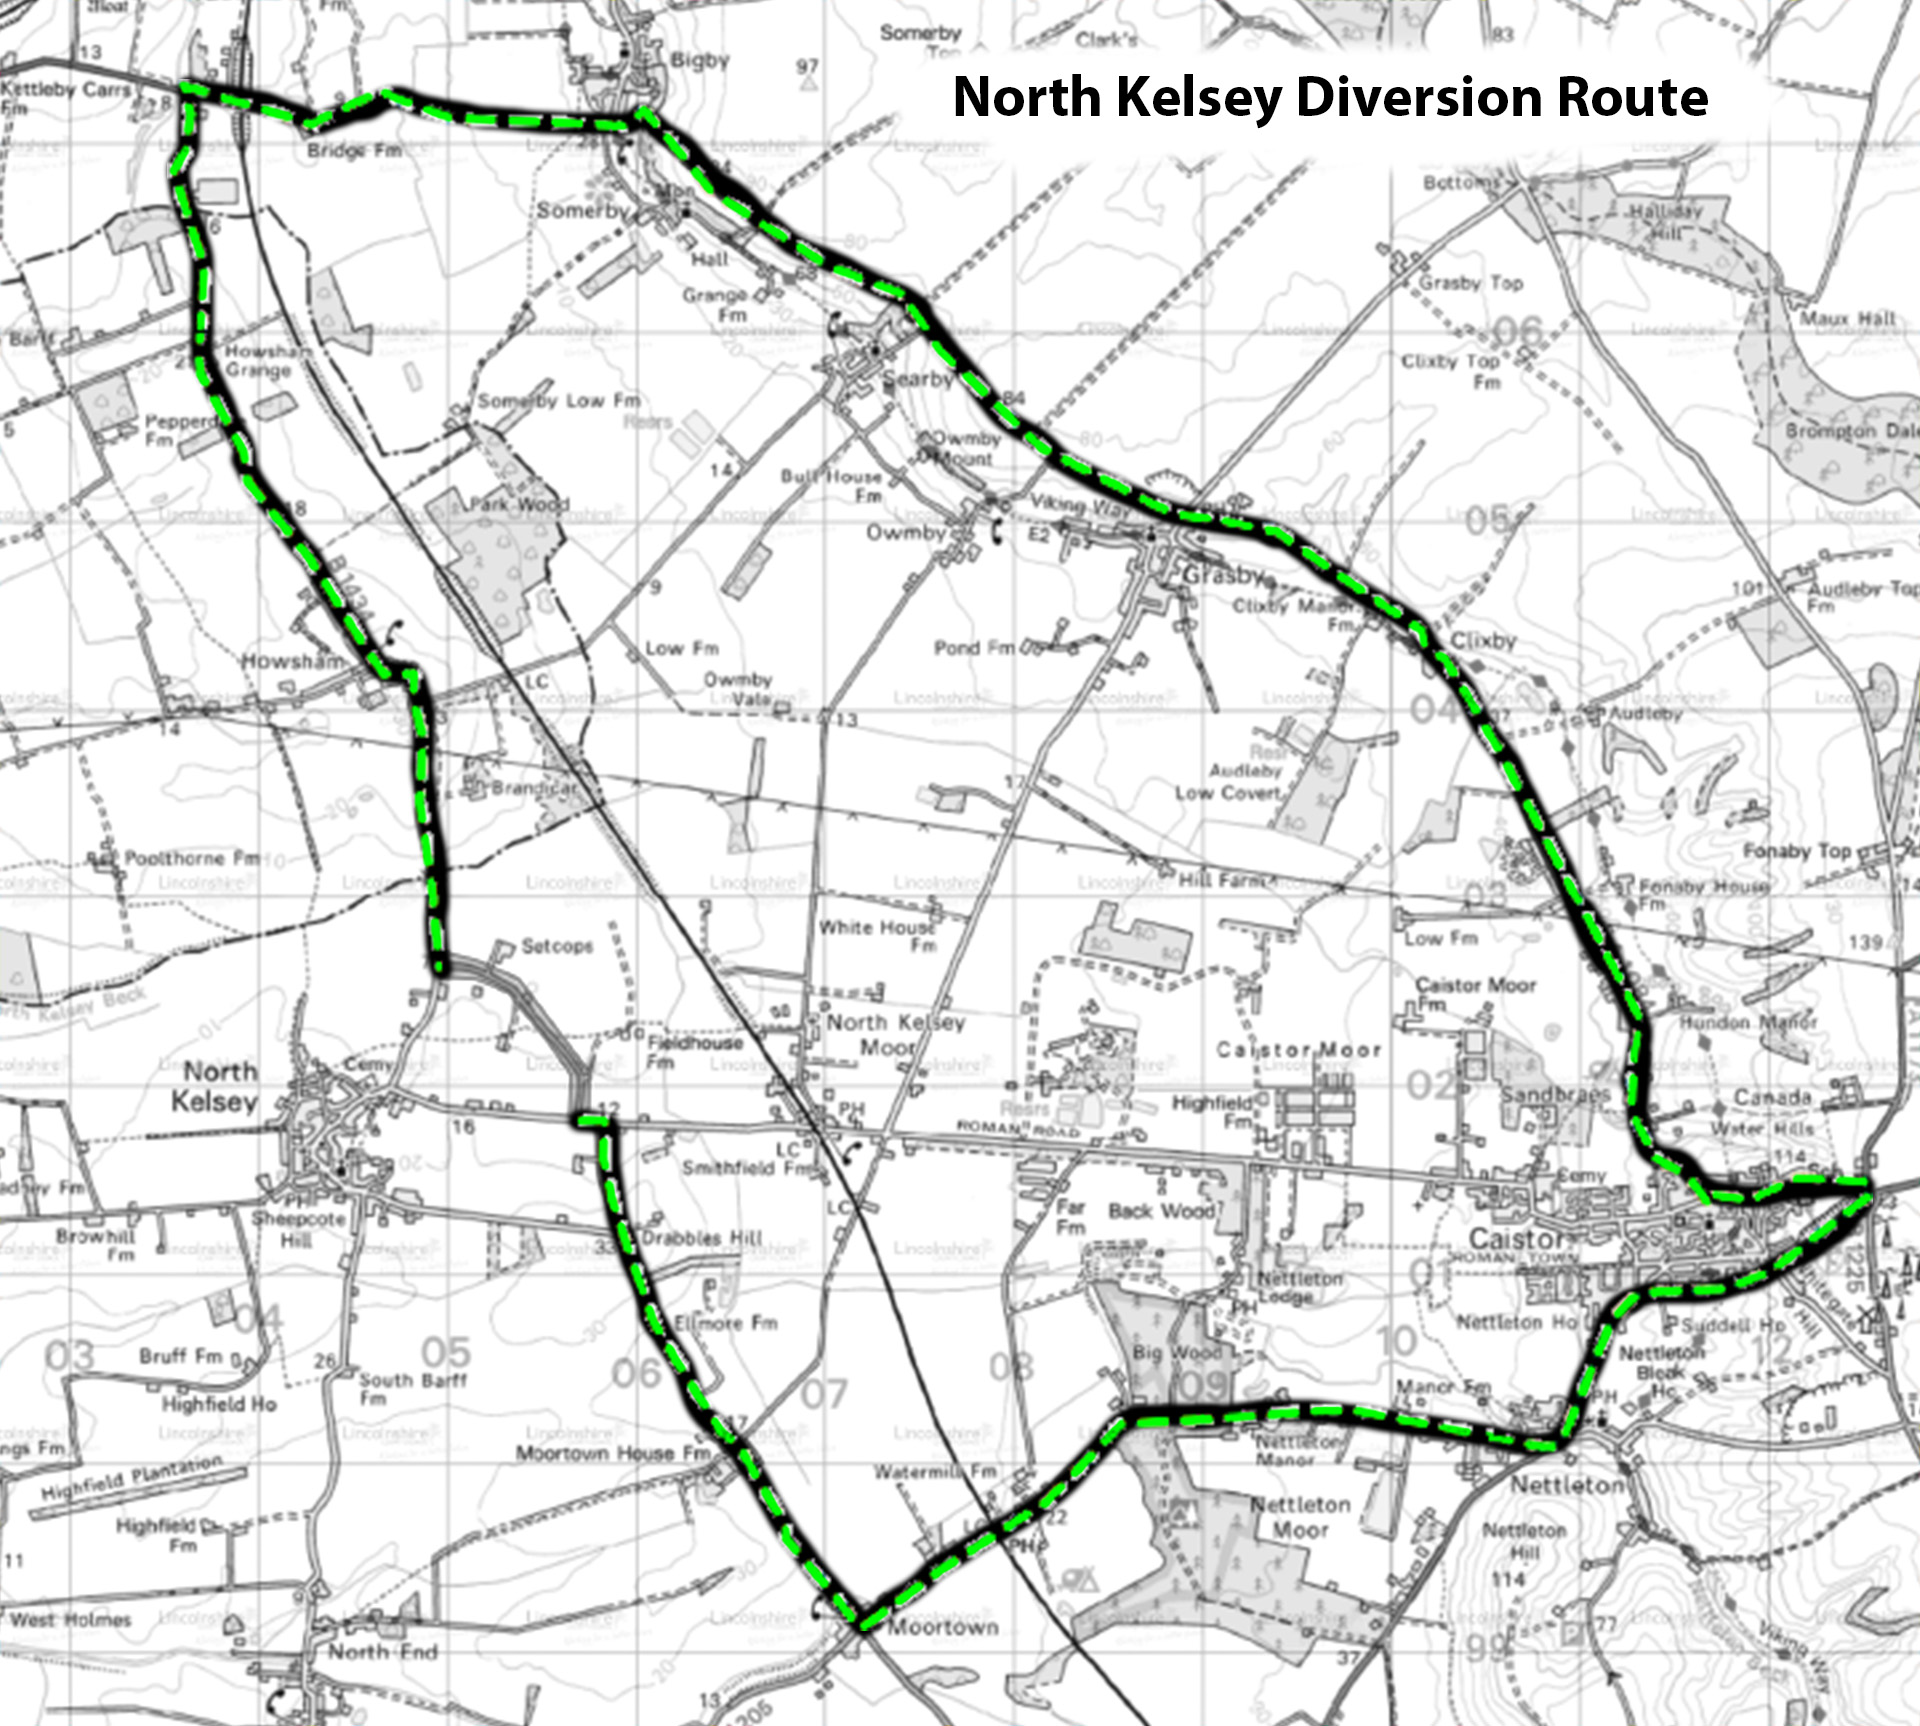 Diversion route b1434 north kelsey